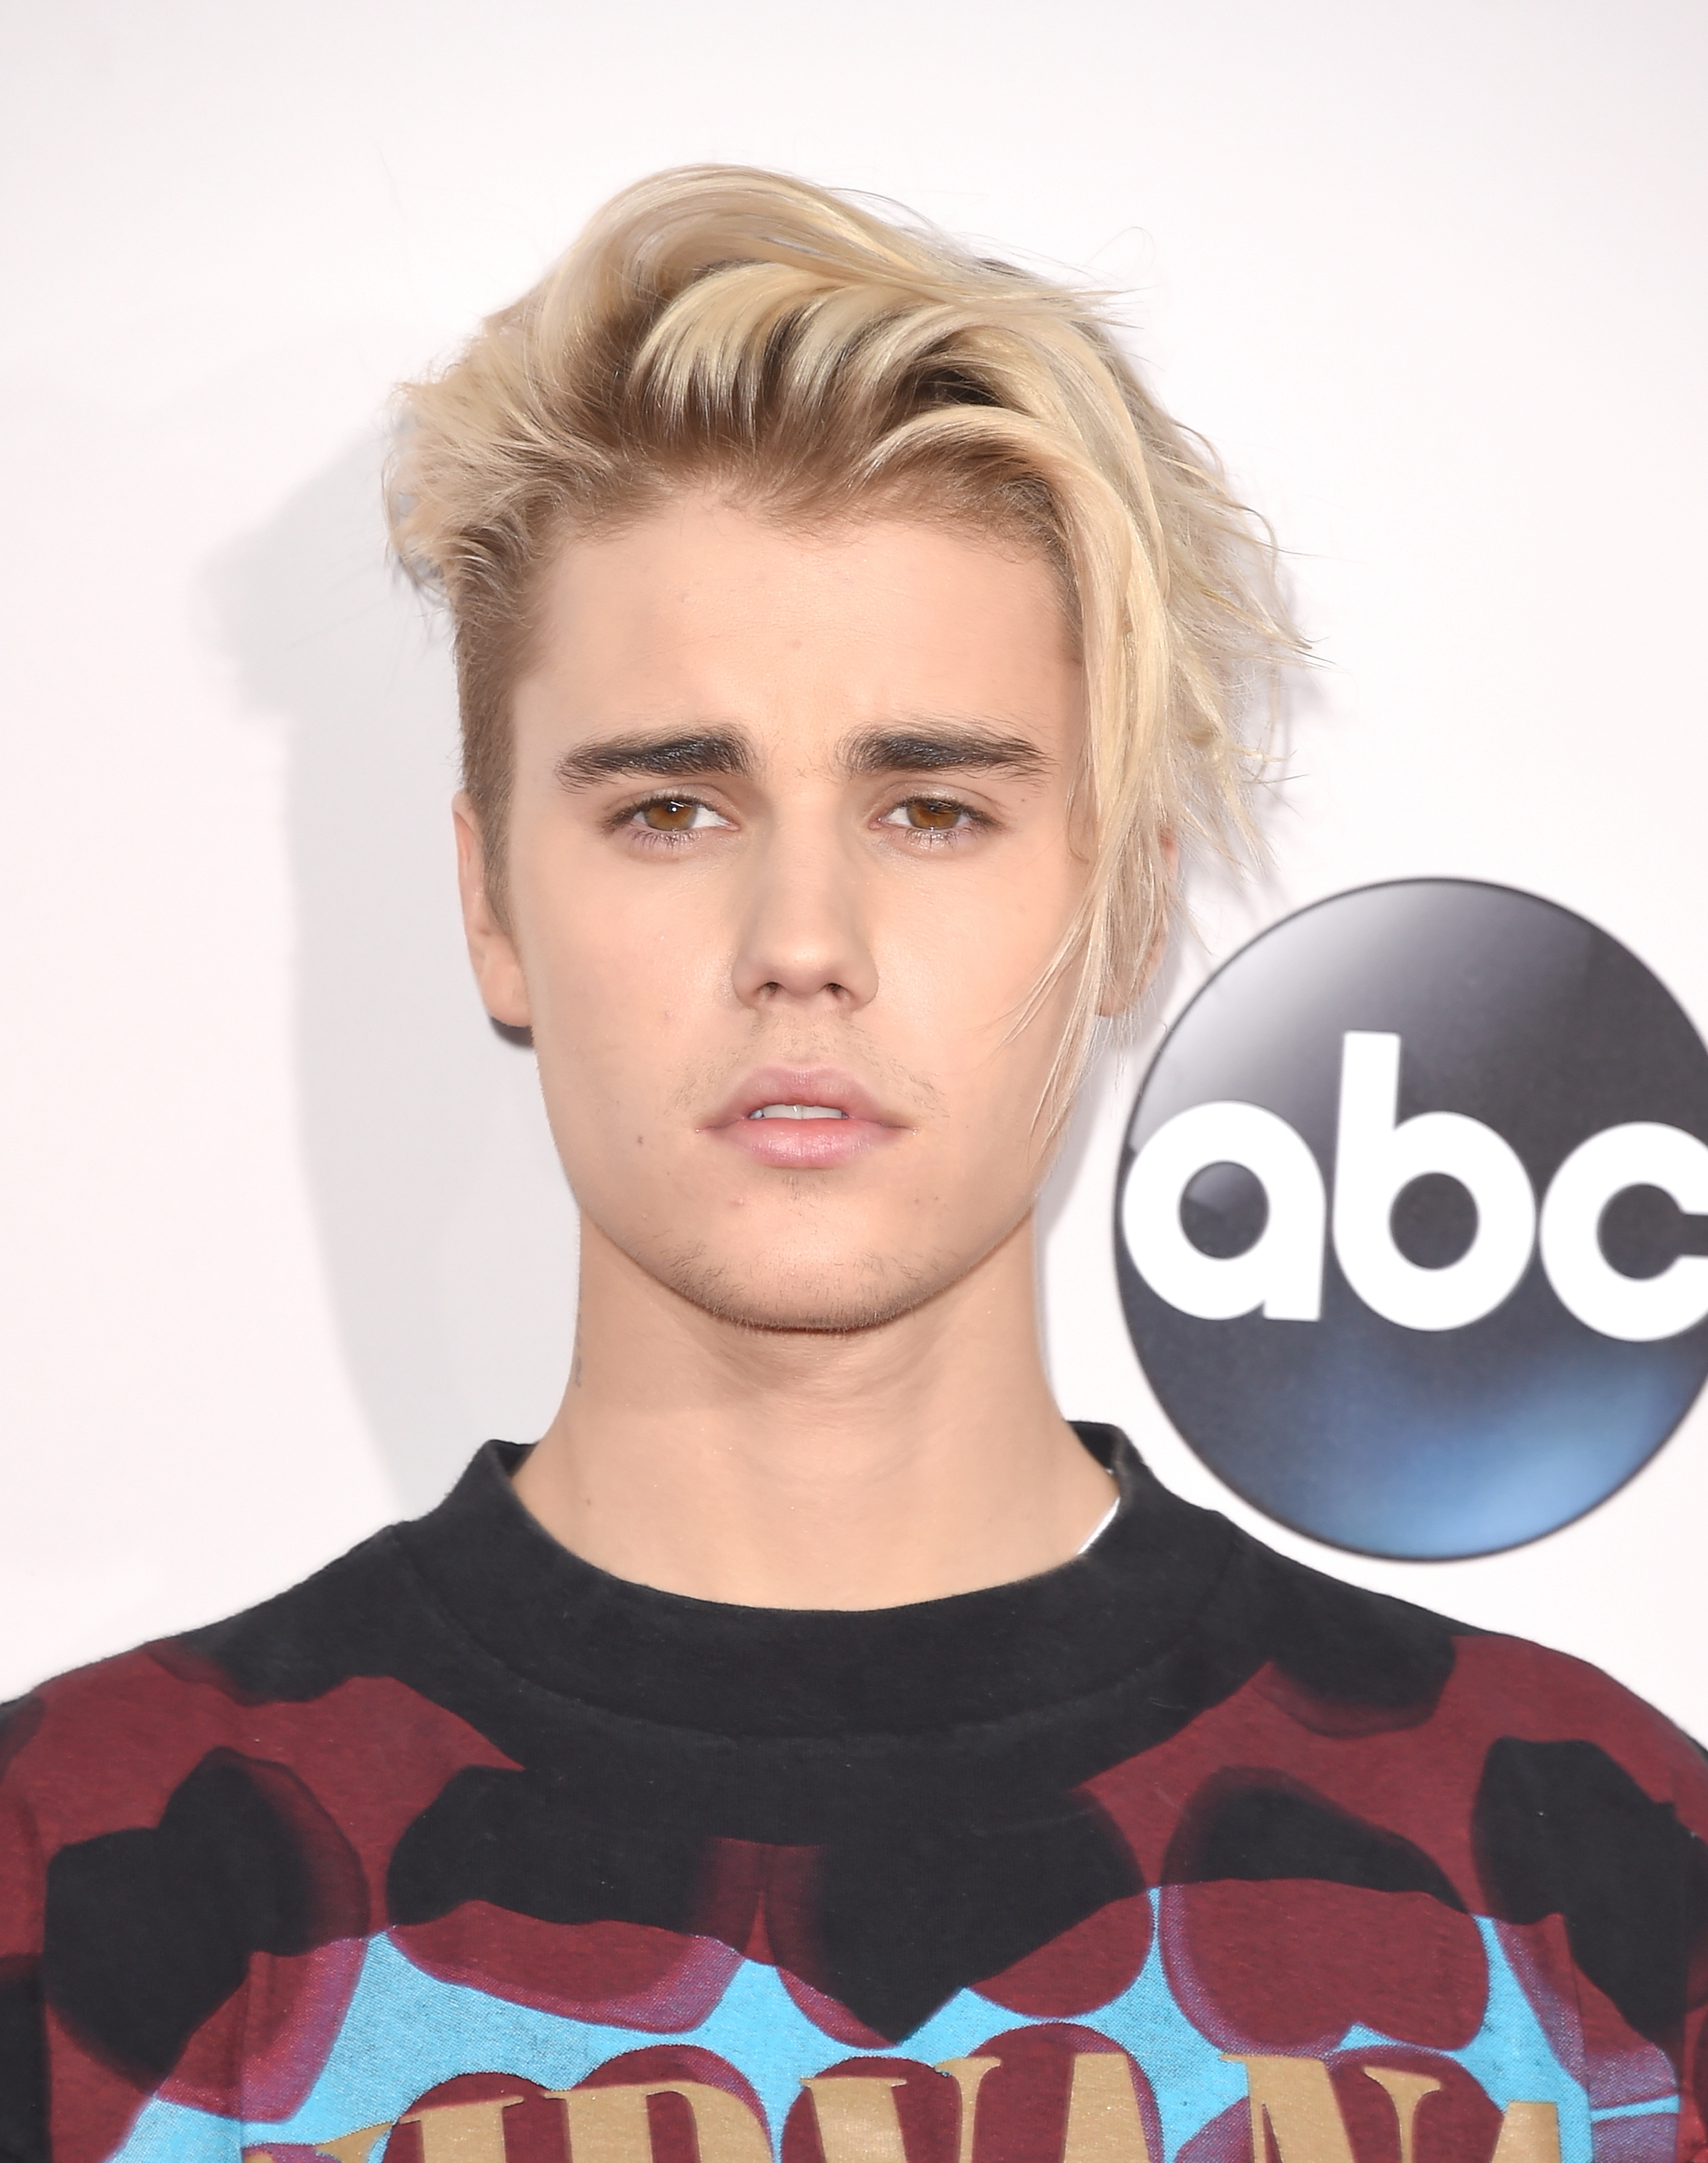 All Of Justin Bieberu0027s Hairstyles In 2015 Will Make You Belieb In The  Transformative Power Of Bleach U2014 PHOTOS